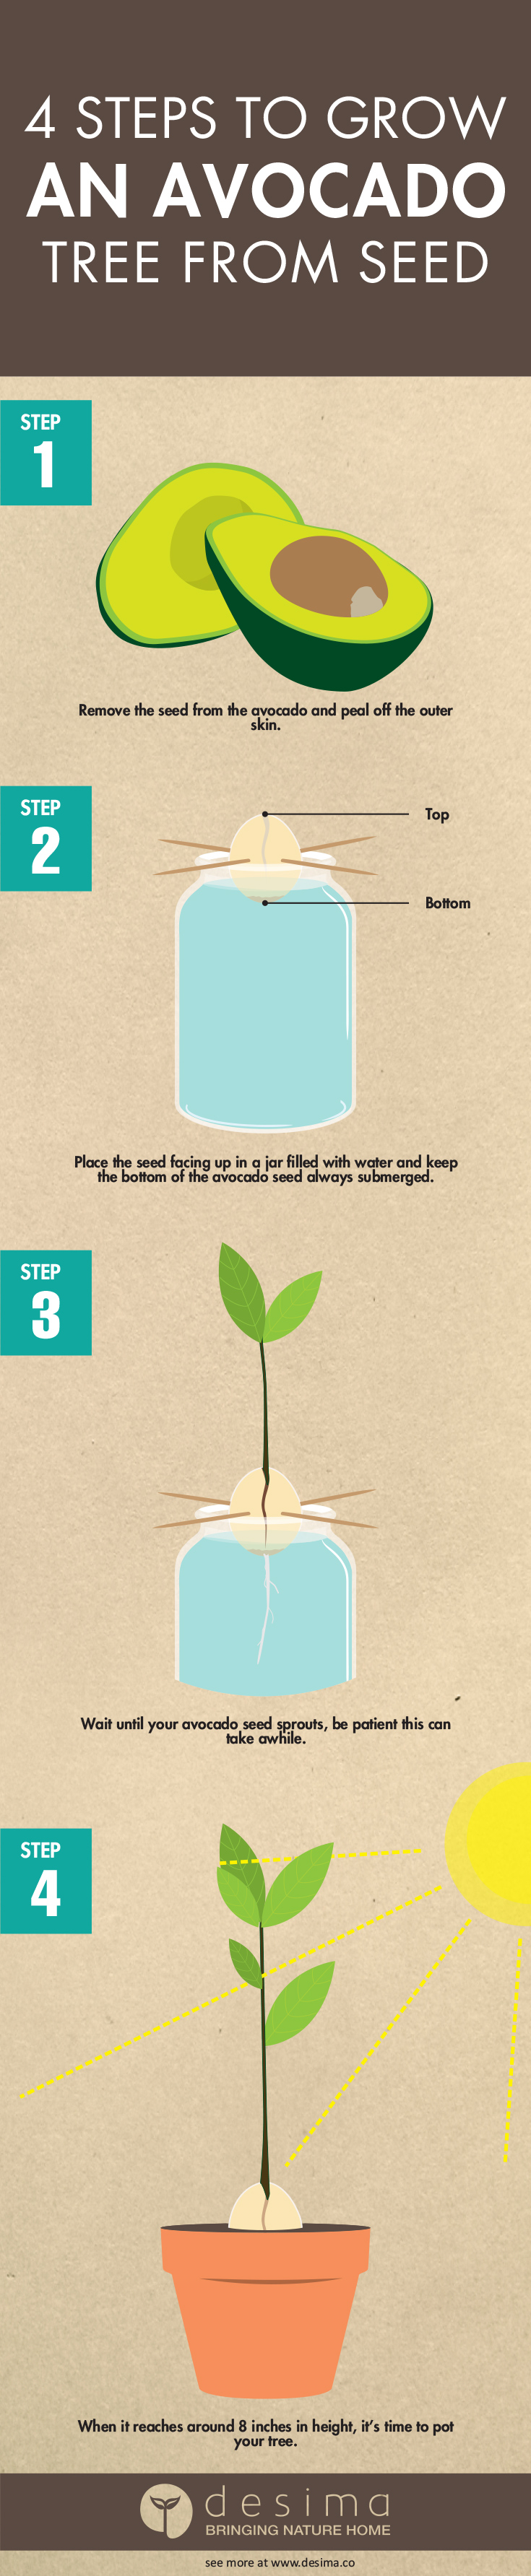 Infographic on how to grow an avocado tree from seed in 4 easy steps.